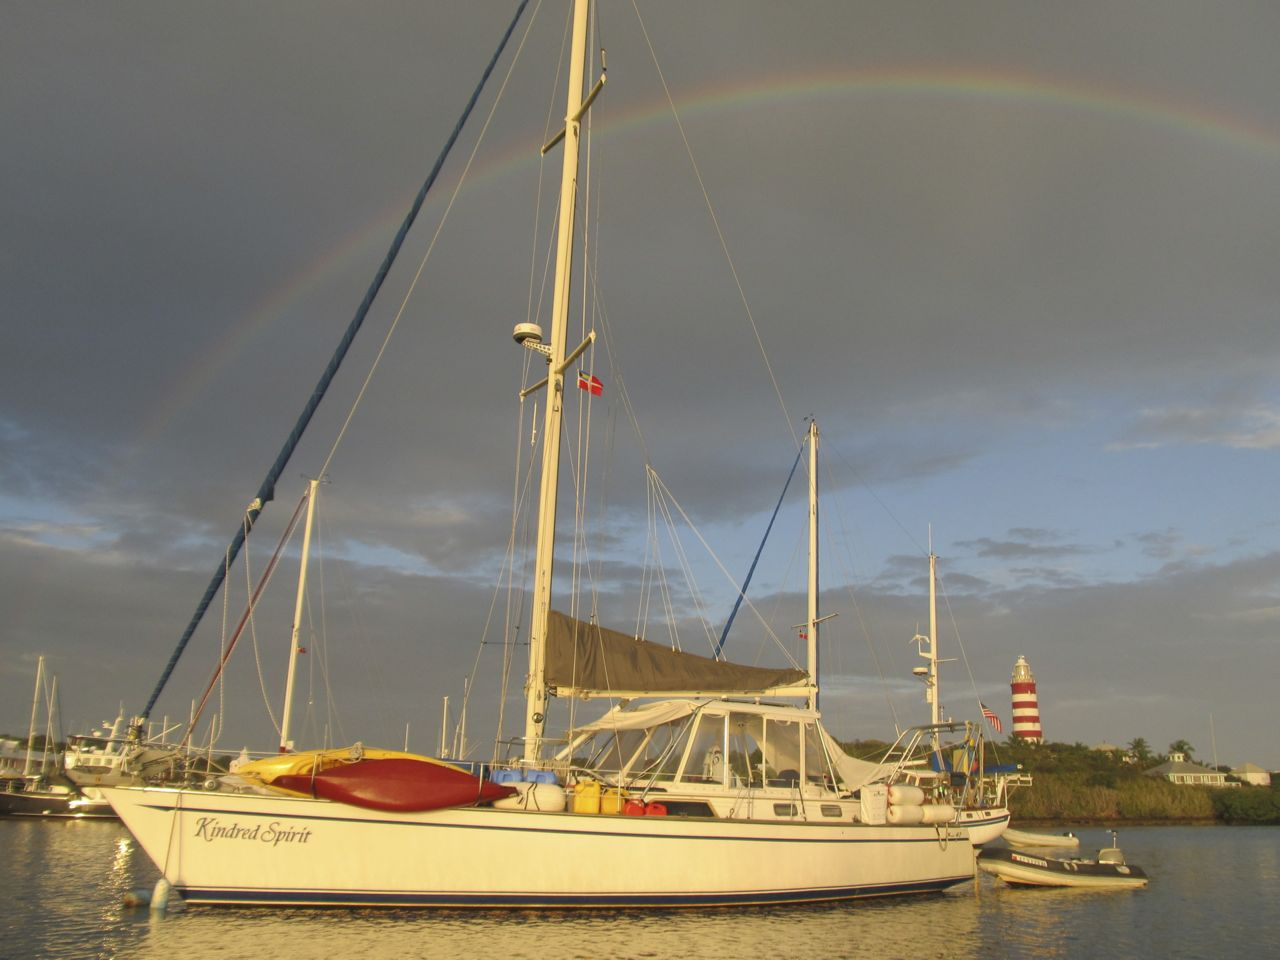 May there always be a rainbow wherever she sails